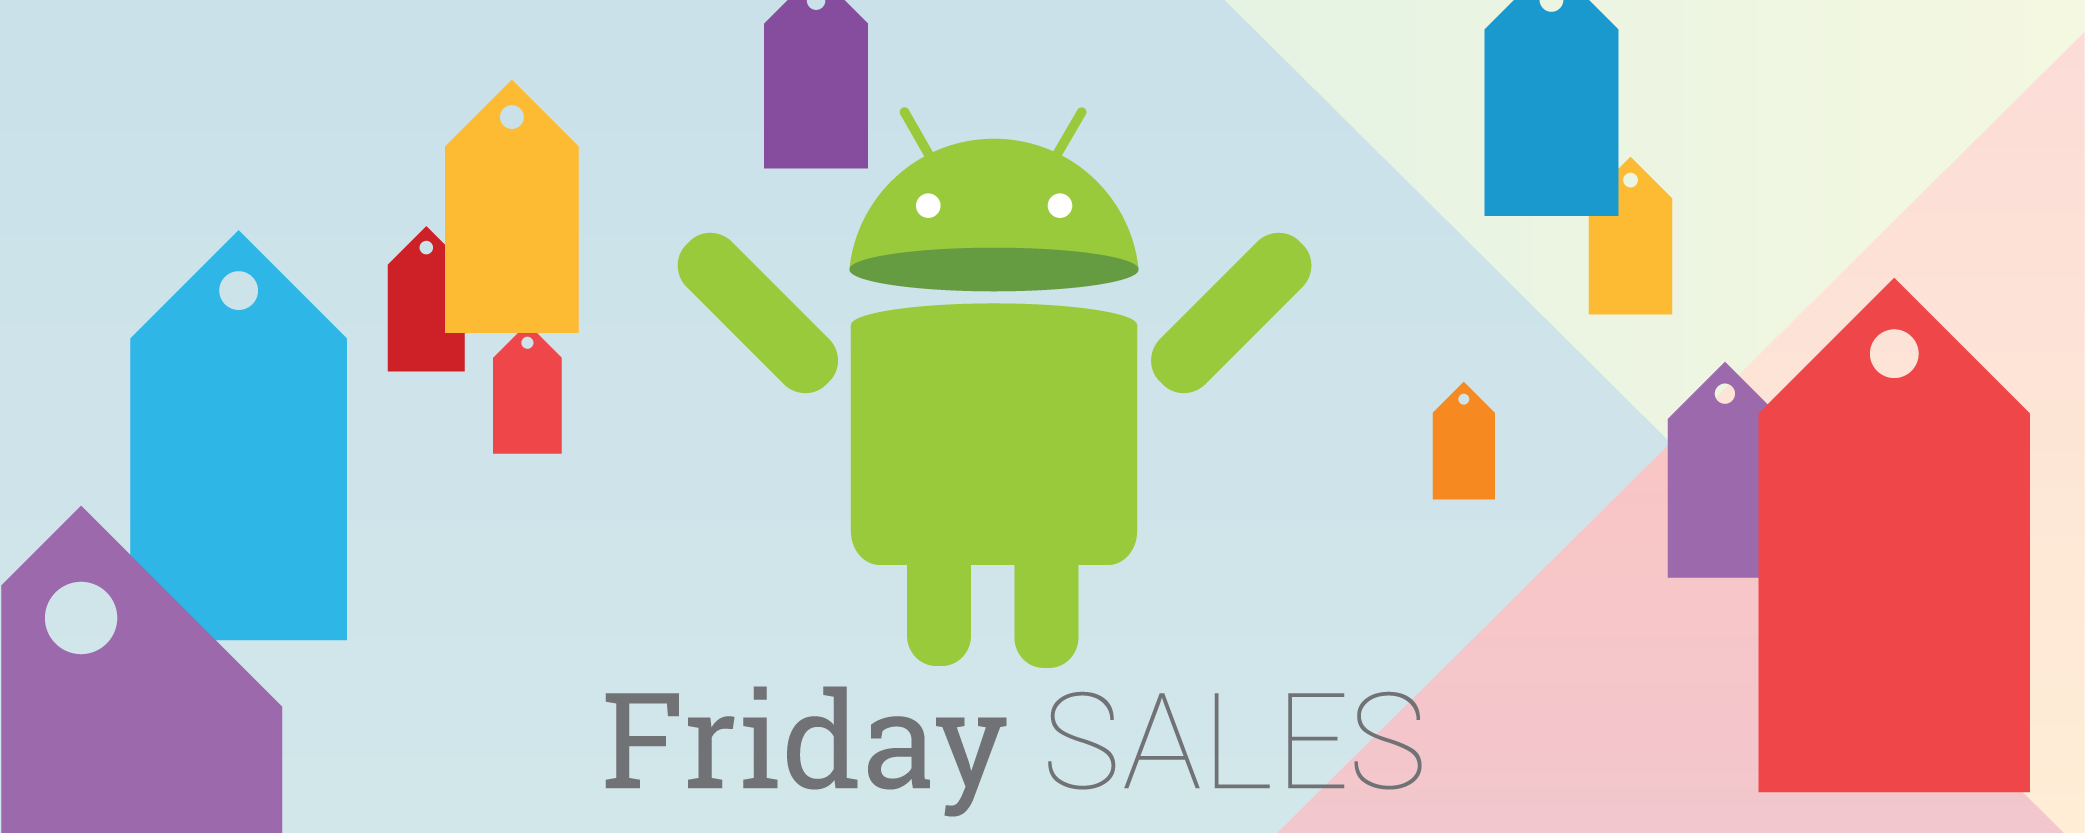 36 temporarily free and 48 on-sale apps and games for Friday